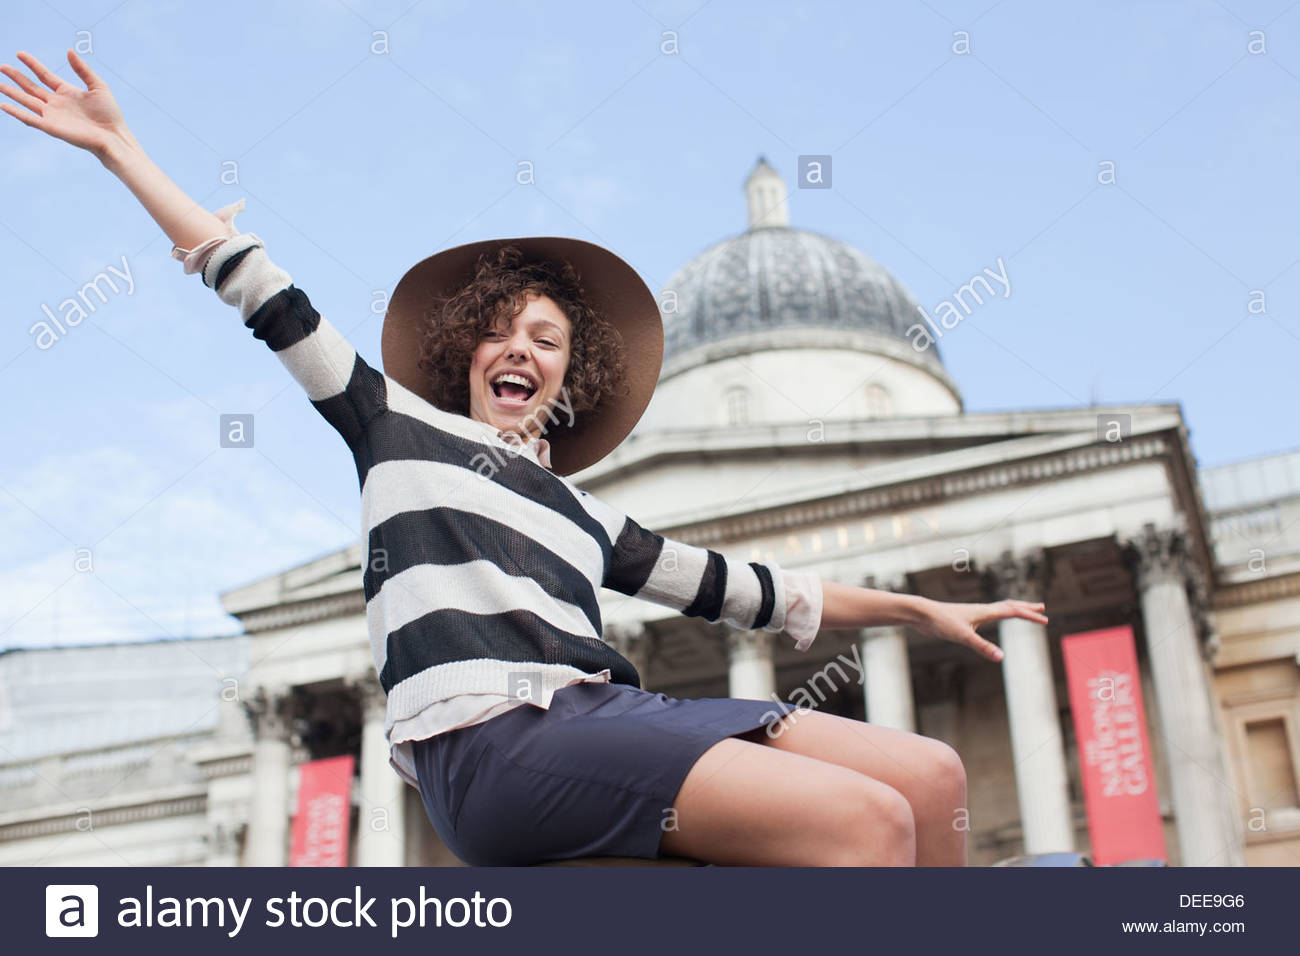 Exuberant woman in hat below historical landmark in London - Stock Image